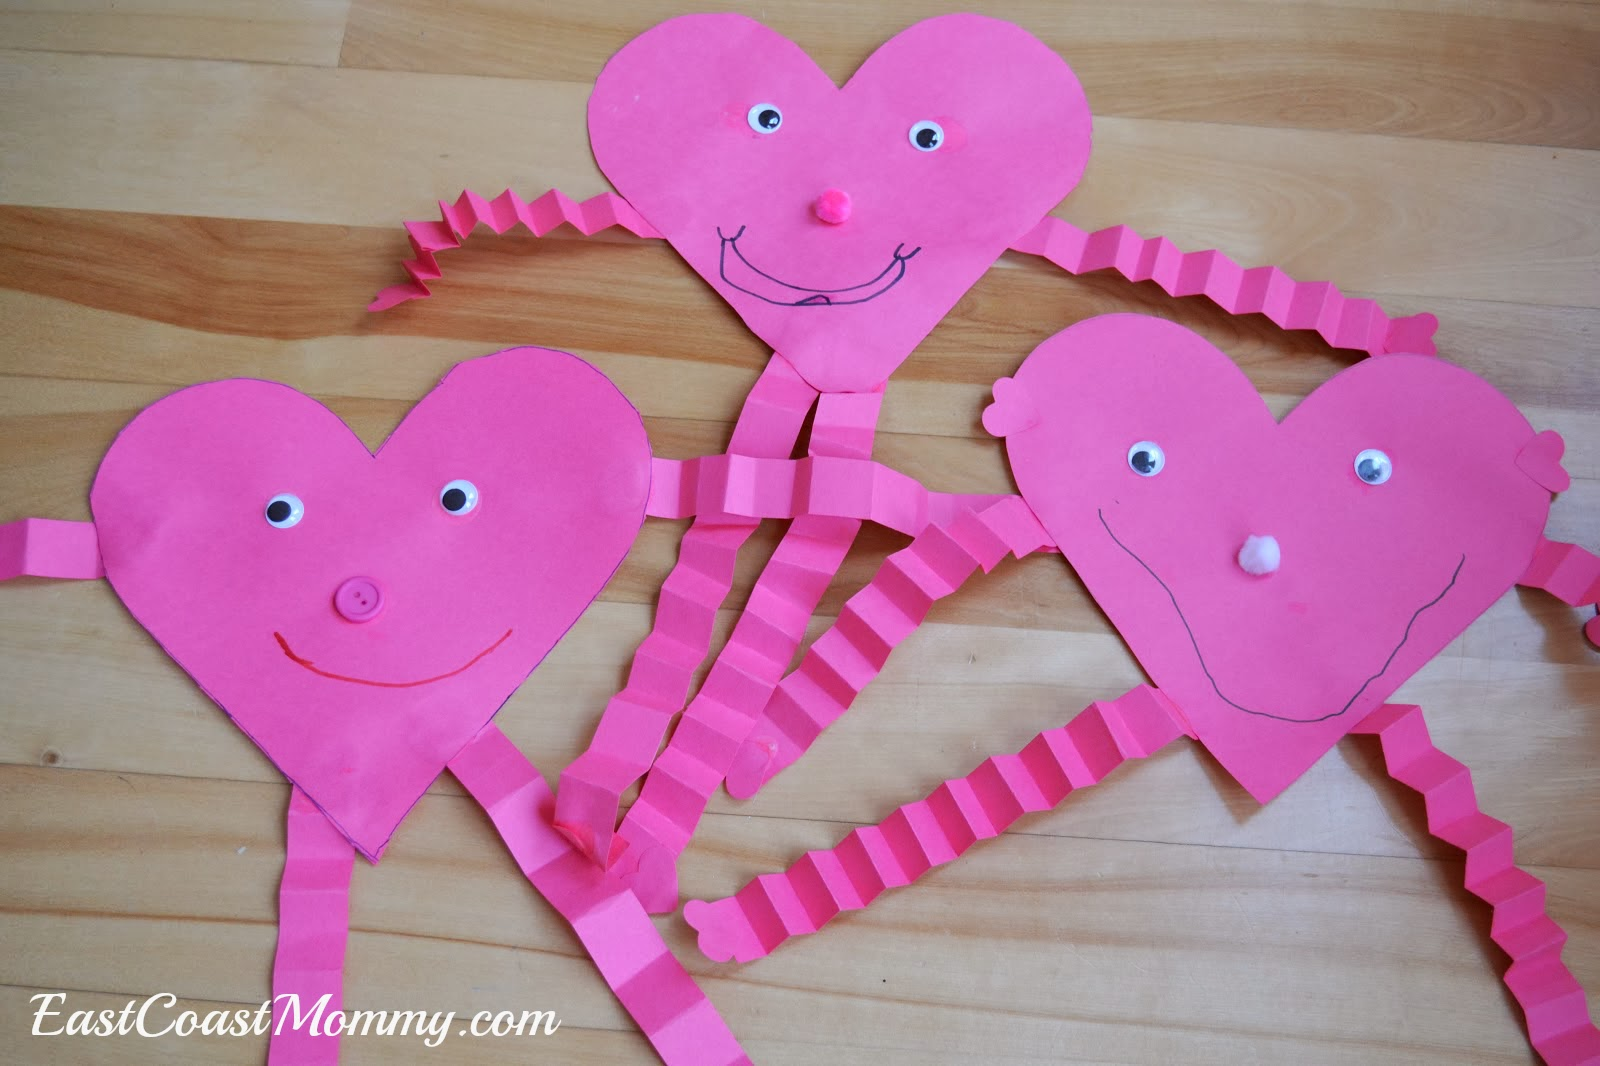 12 easy valentine crafts for toddlers preschoolers you for Valentines crafts for kindergarten